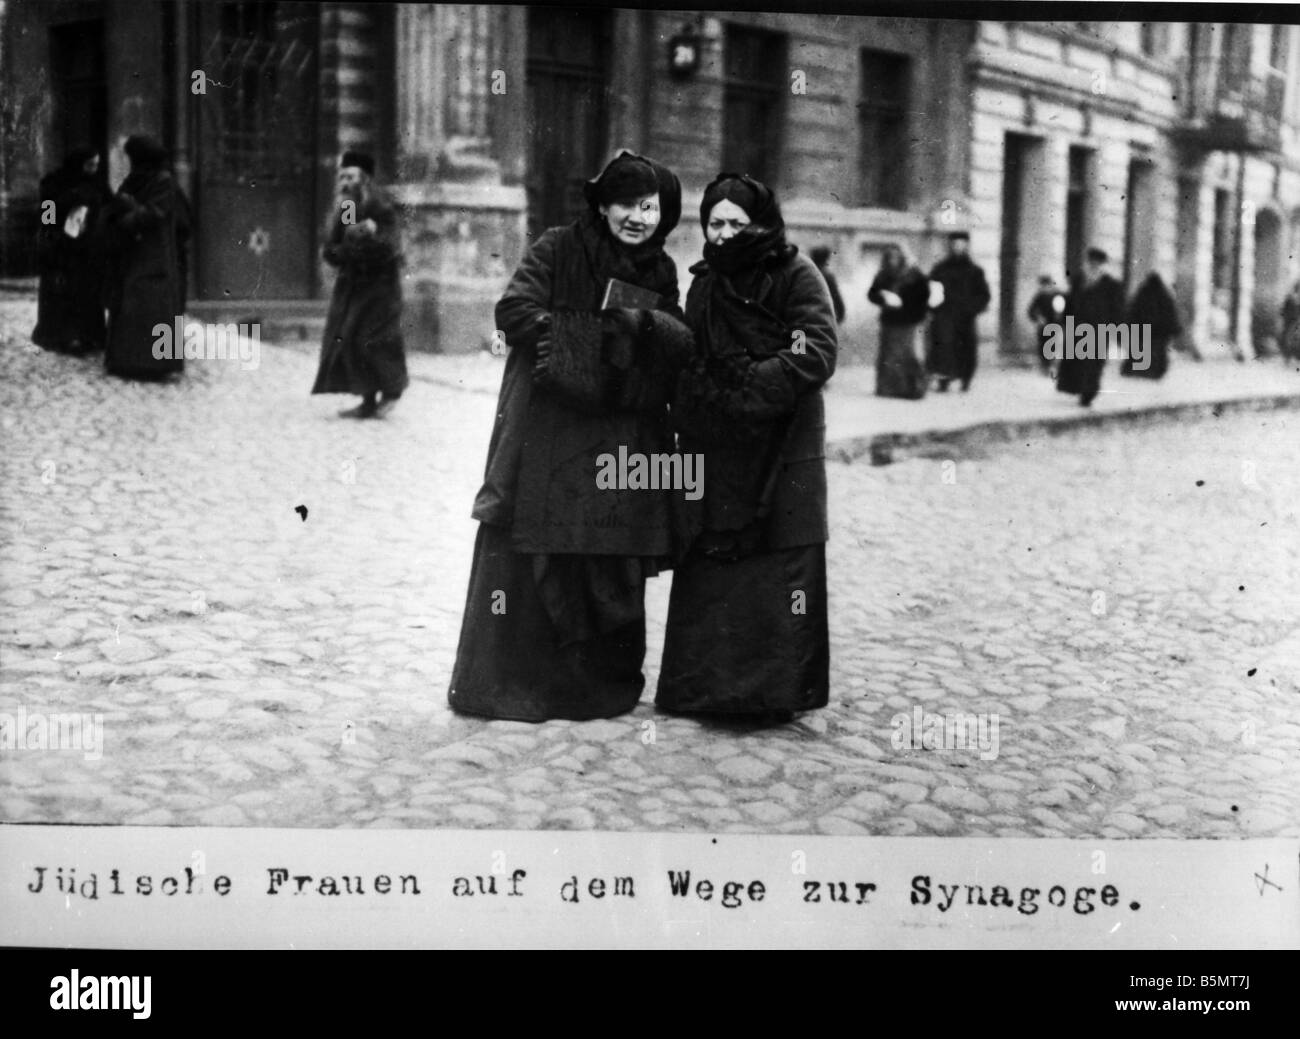 9IS 1915 0 0 A1 38 Jewish women on way to synagogue 1915 History of Judaism Eastern Jews Jewish women on the way - Stock Image